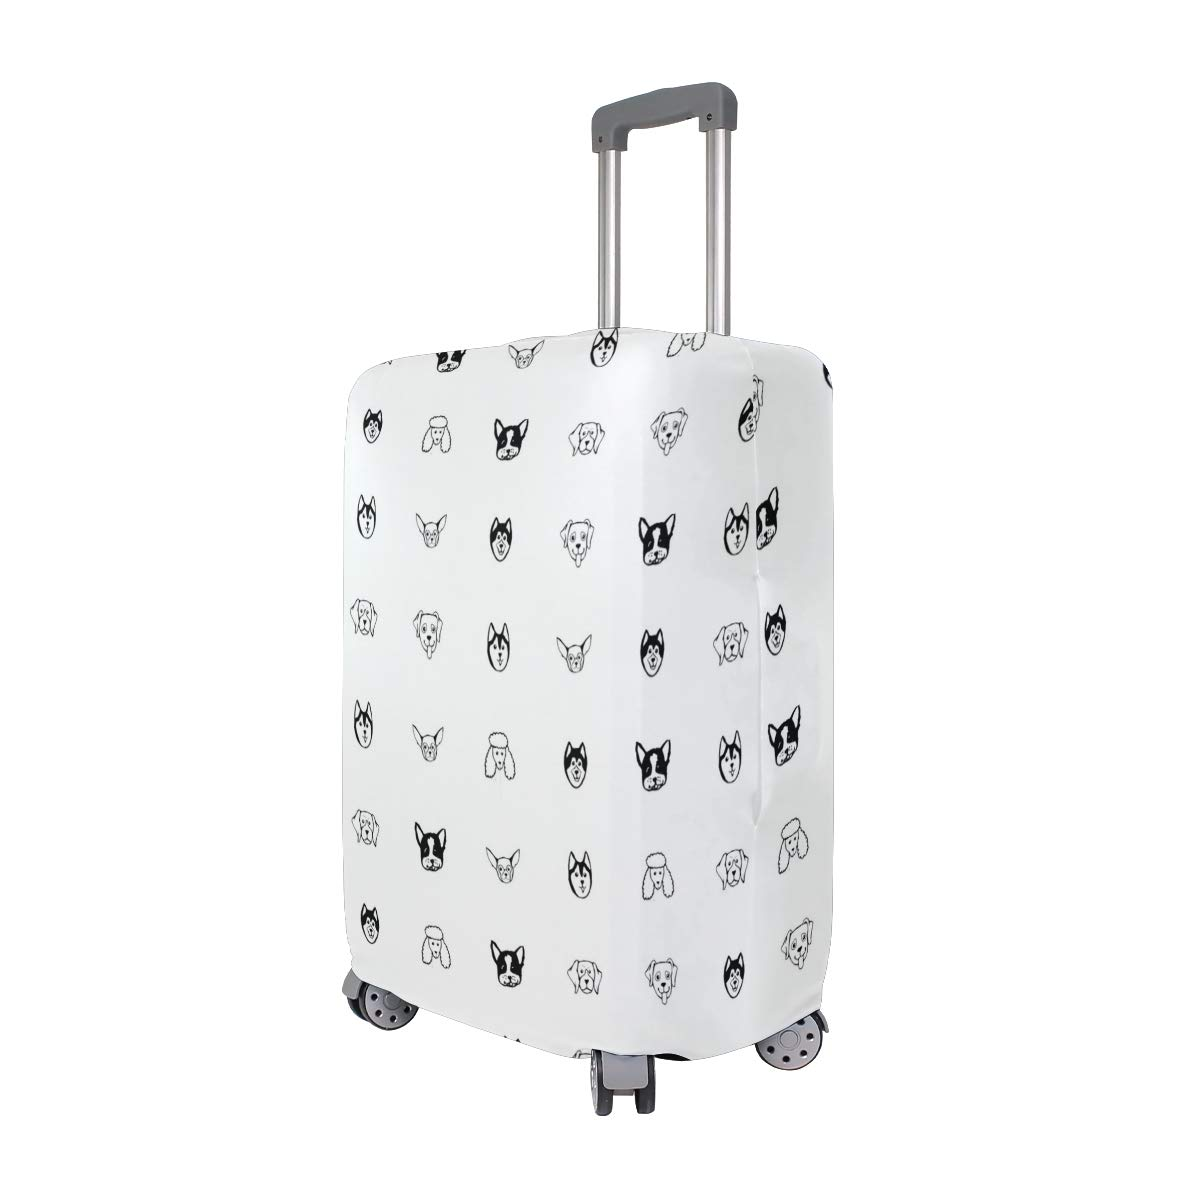 Dog Grooming Bones Traveler Lightweight Rotating Luggage Protector Case Can Carry With You Can Expand Travel Bag Trolley Rolling Luggage Protector Case